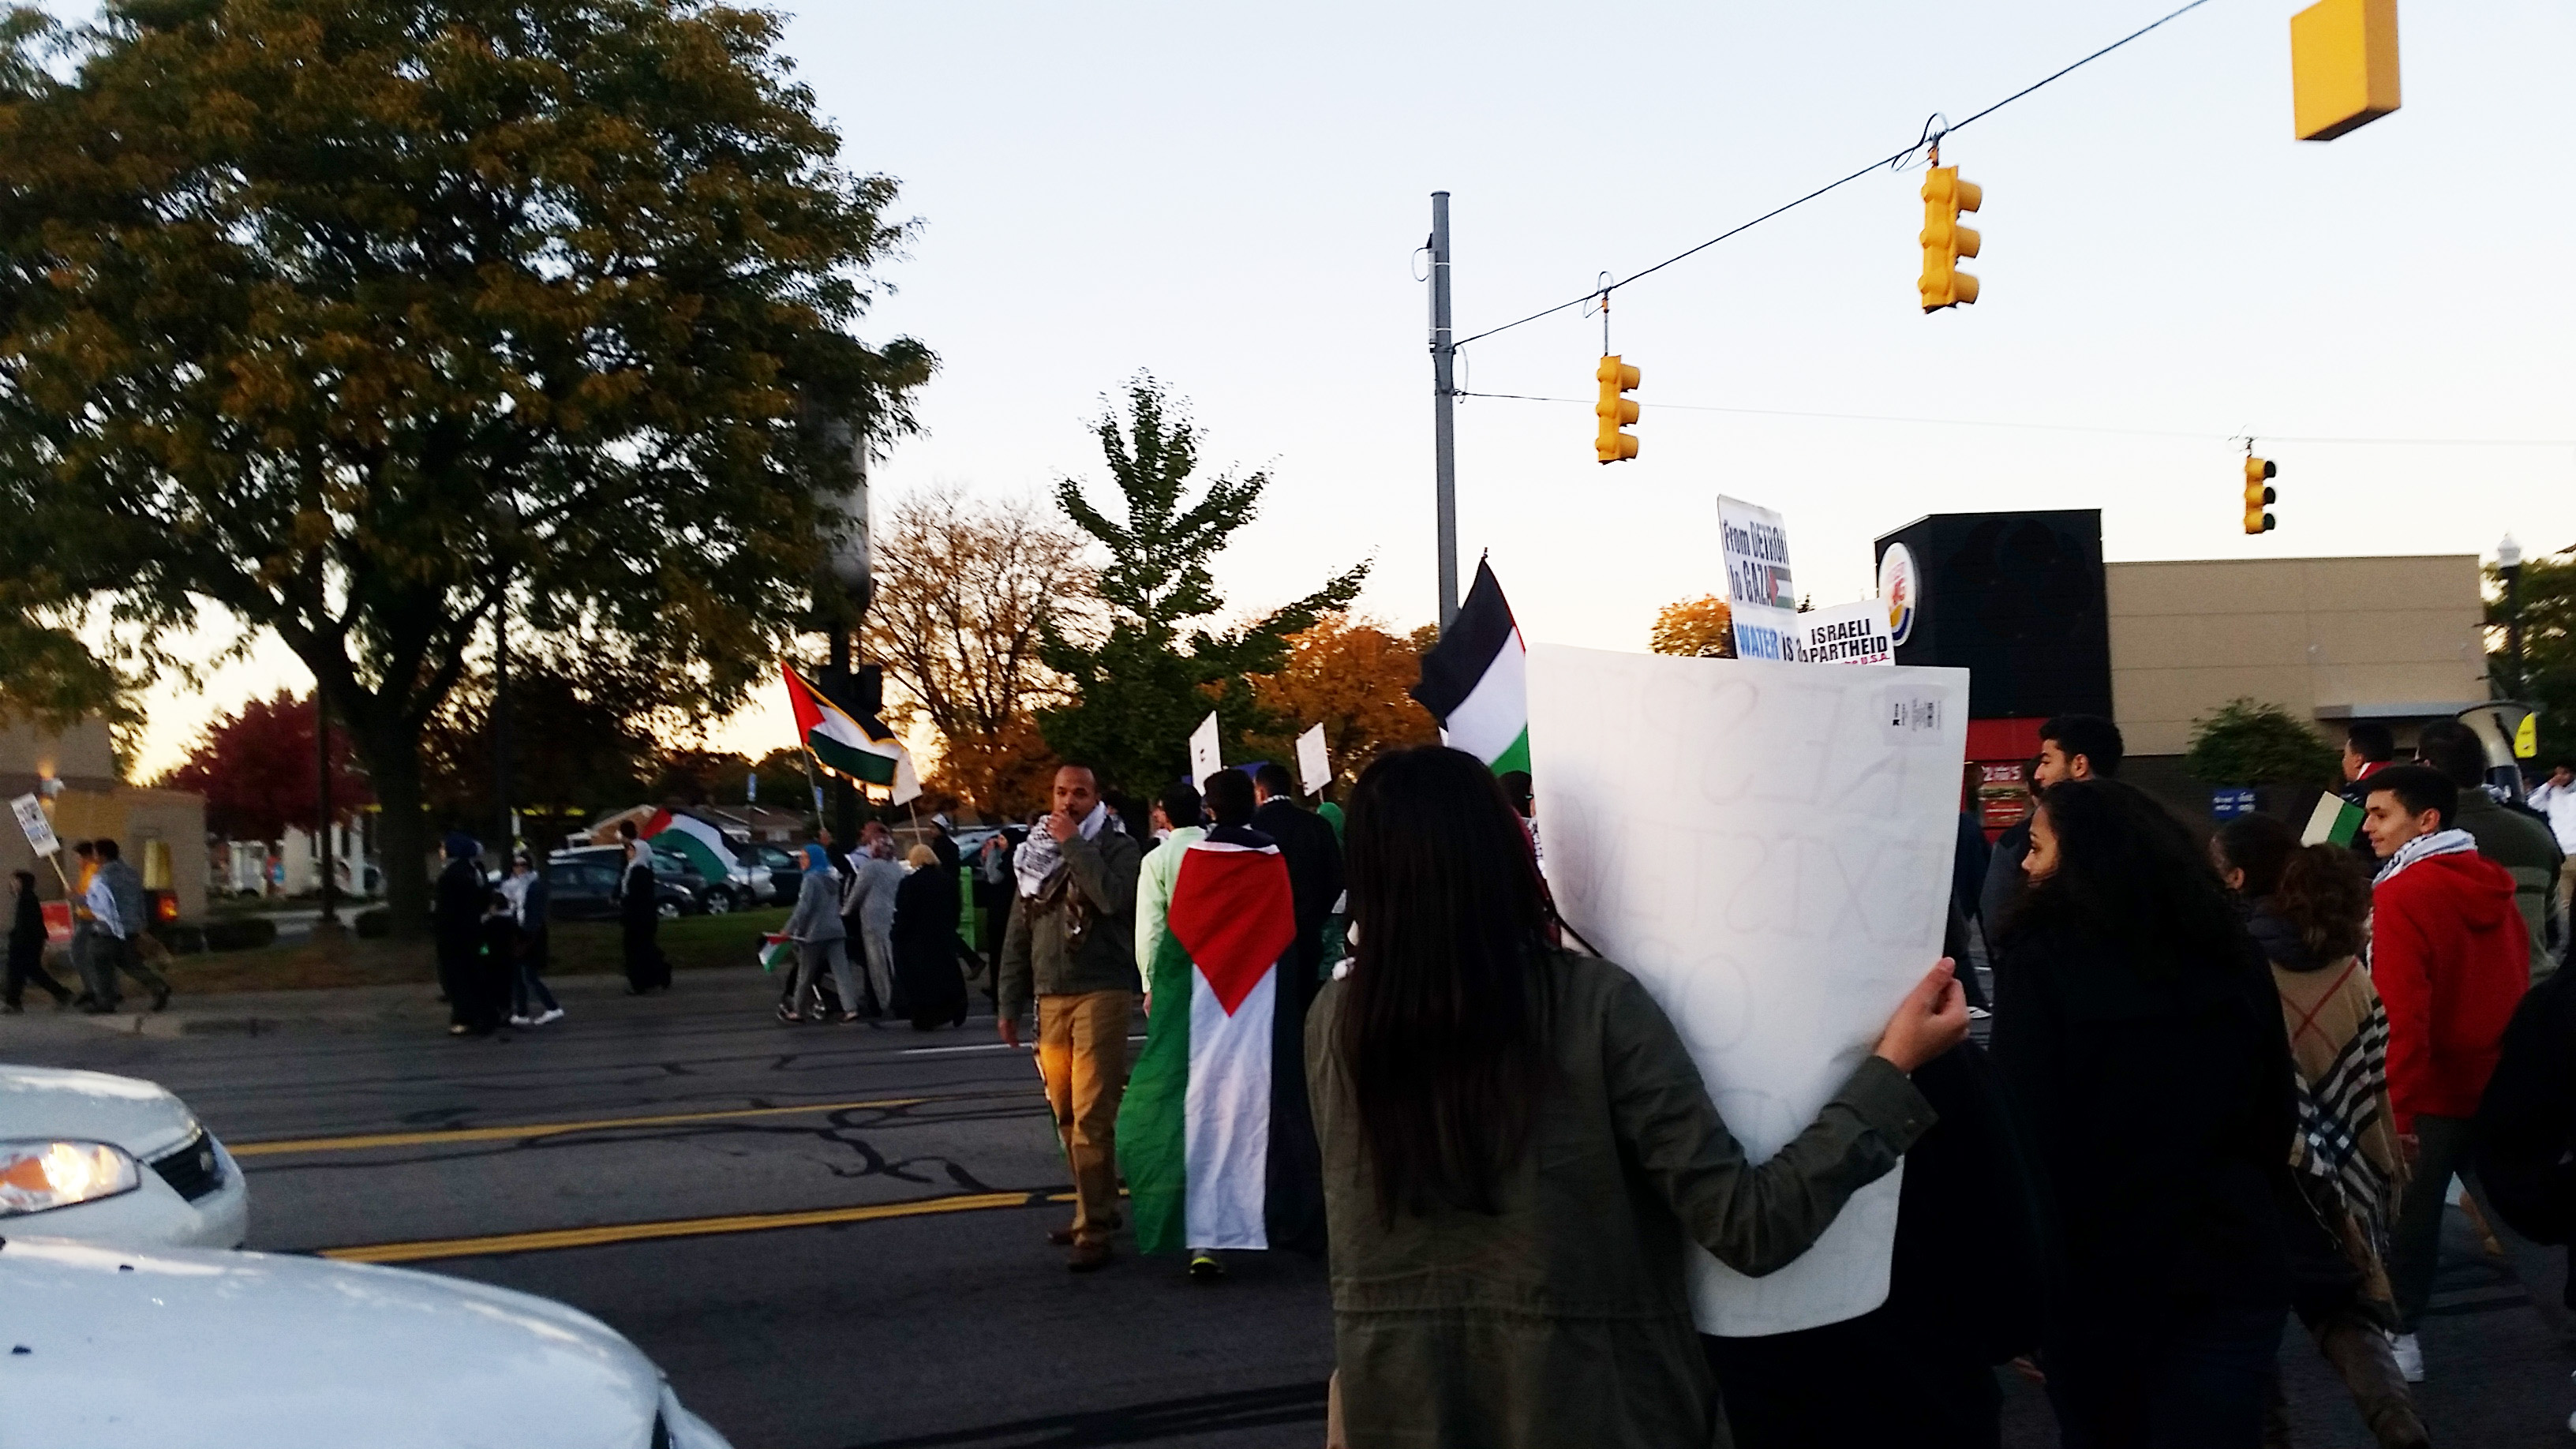 A row of protesters move across a street, holding signs and Palestinian flags.